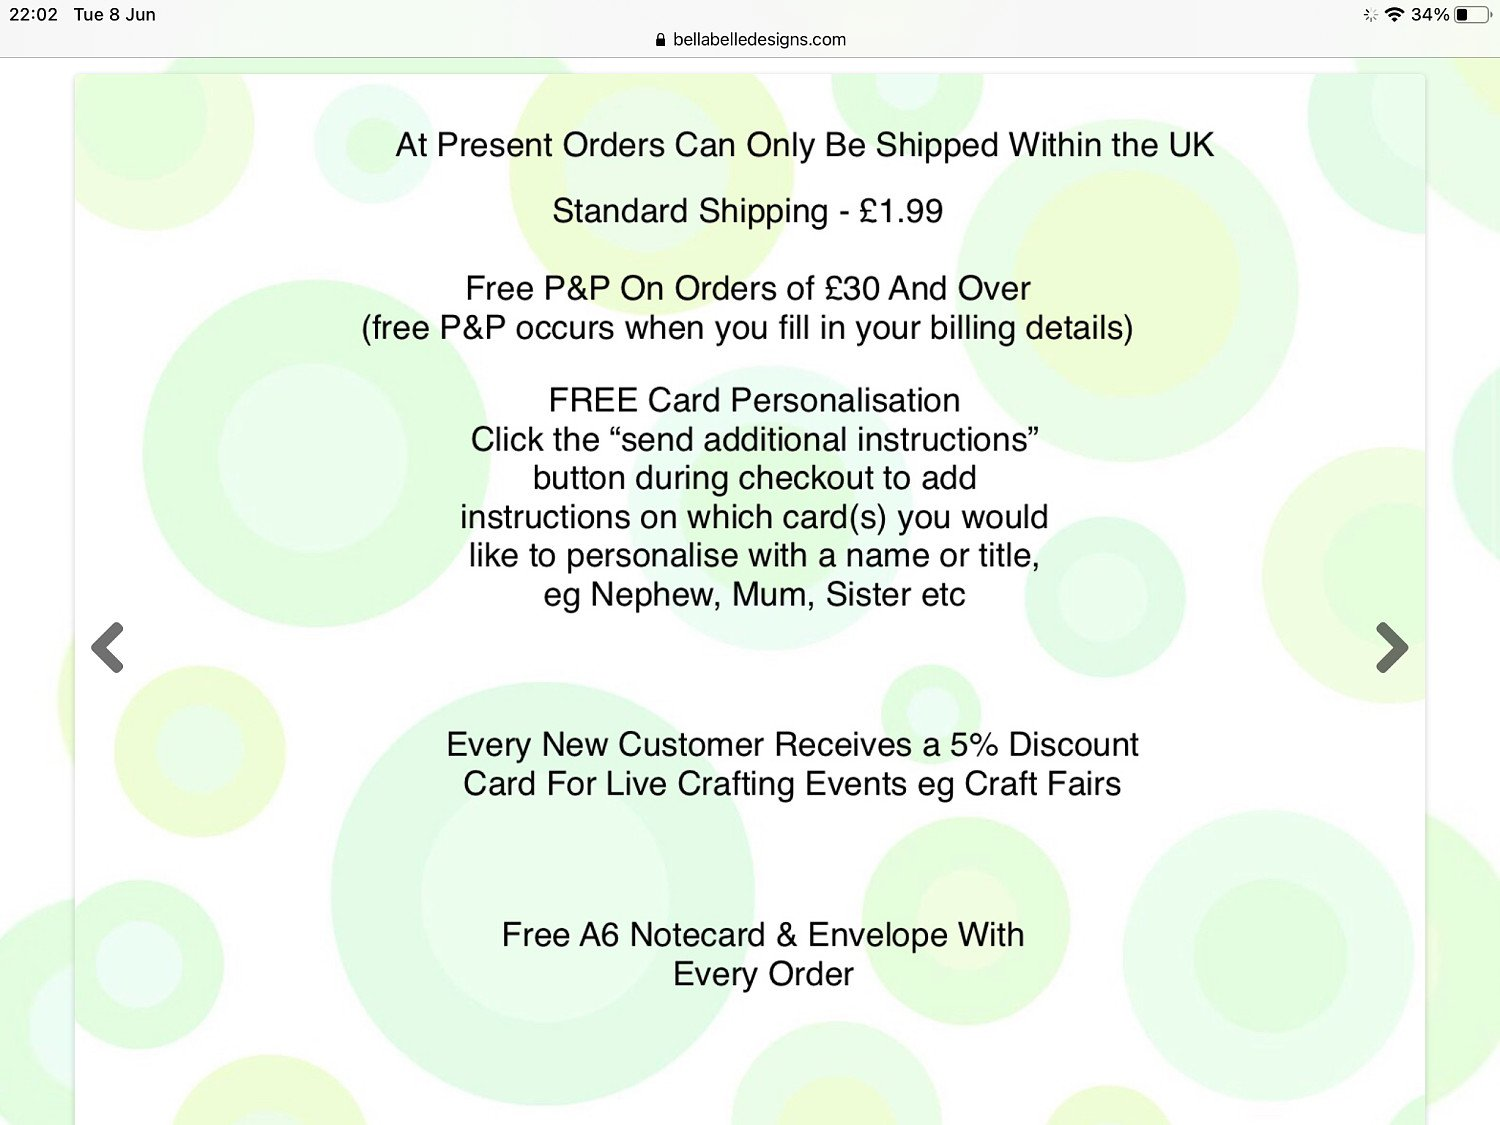 Free card personalisation